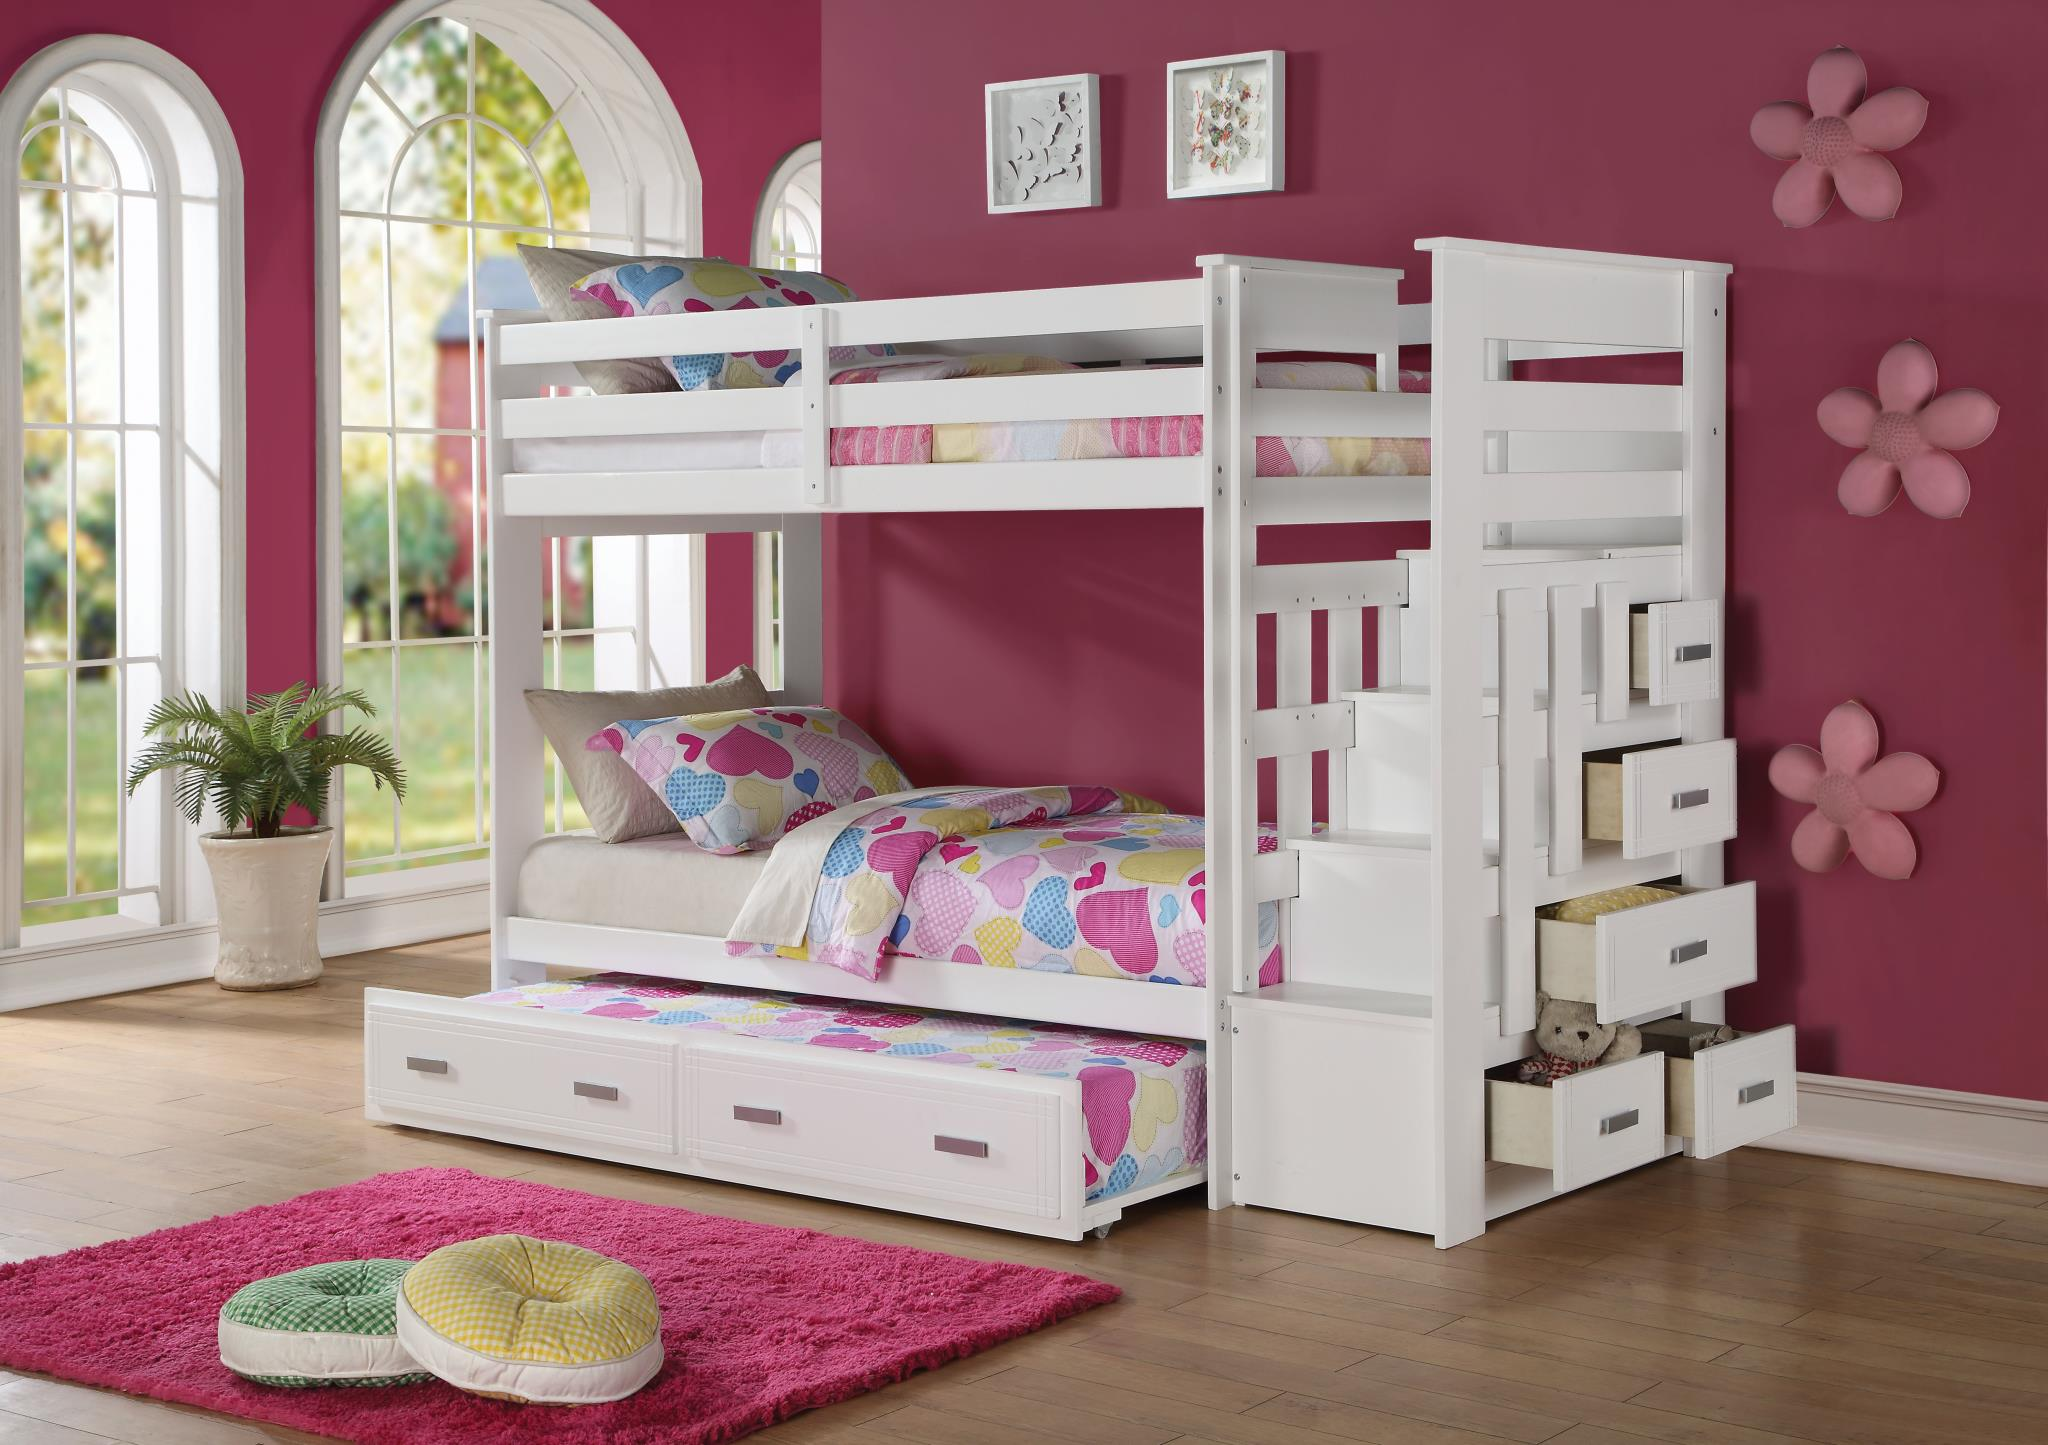 Bunk Bed with Storage Ladder Drawers Opened